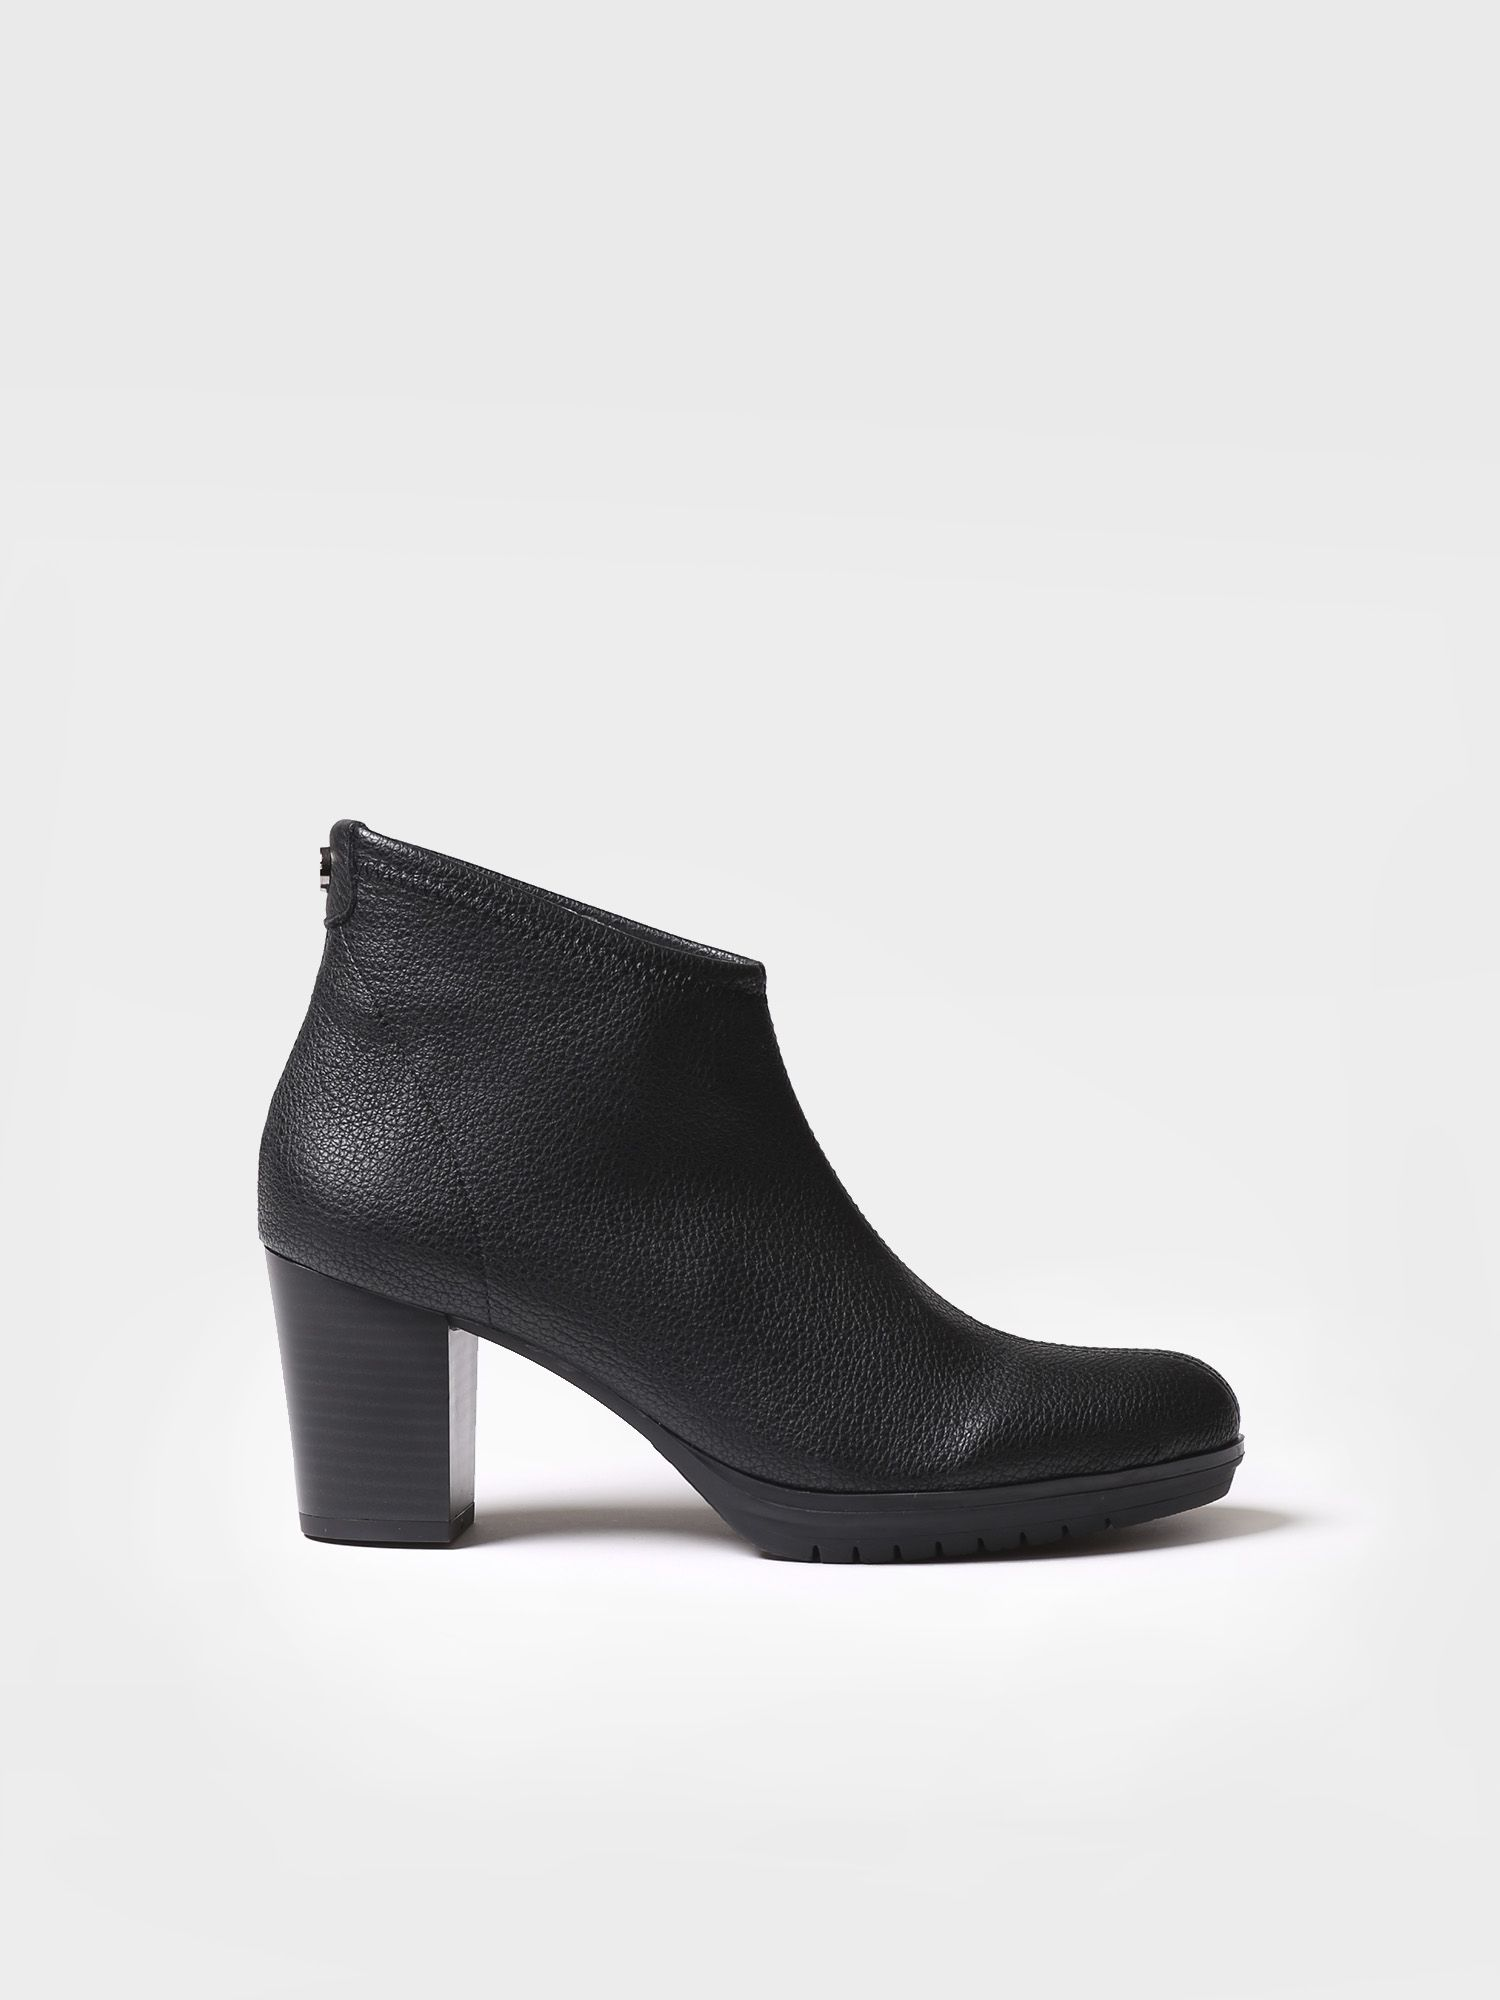 Ankle boot for women made of lycra - FABIA-LP